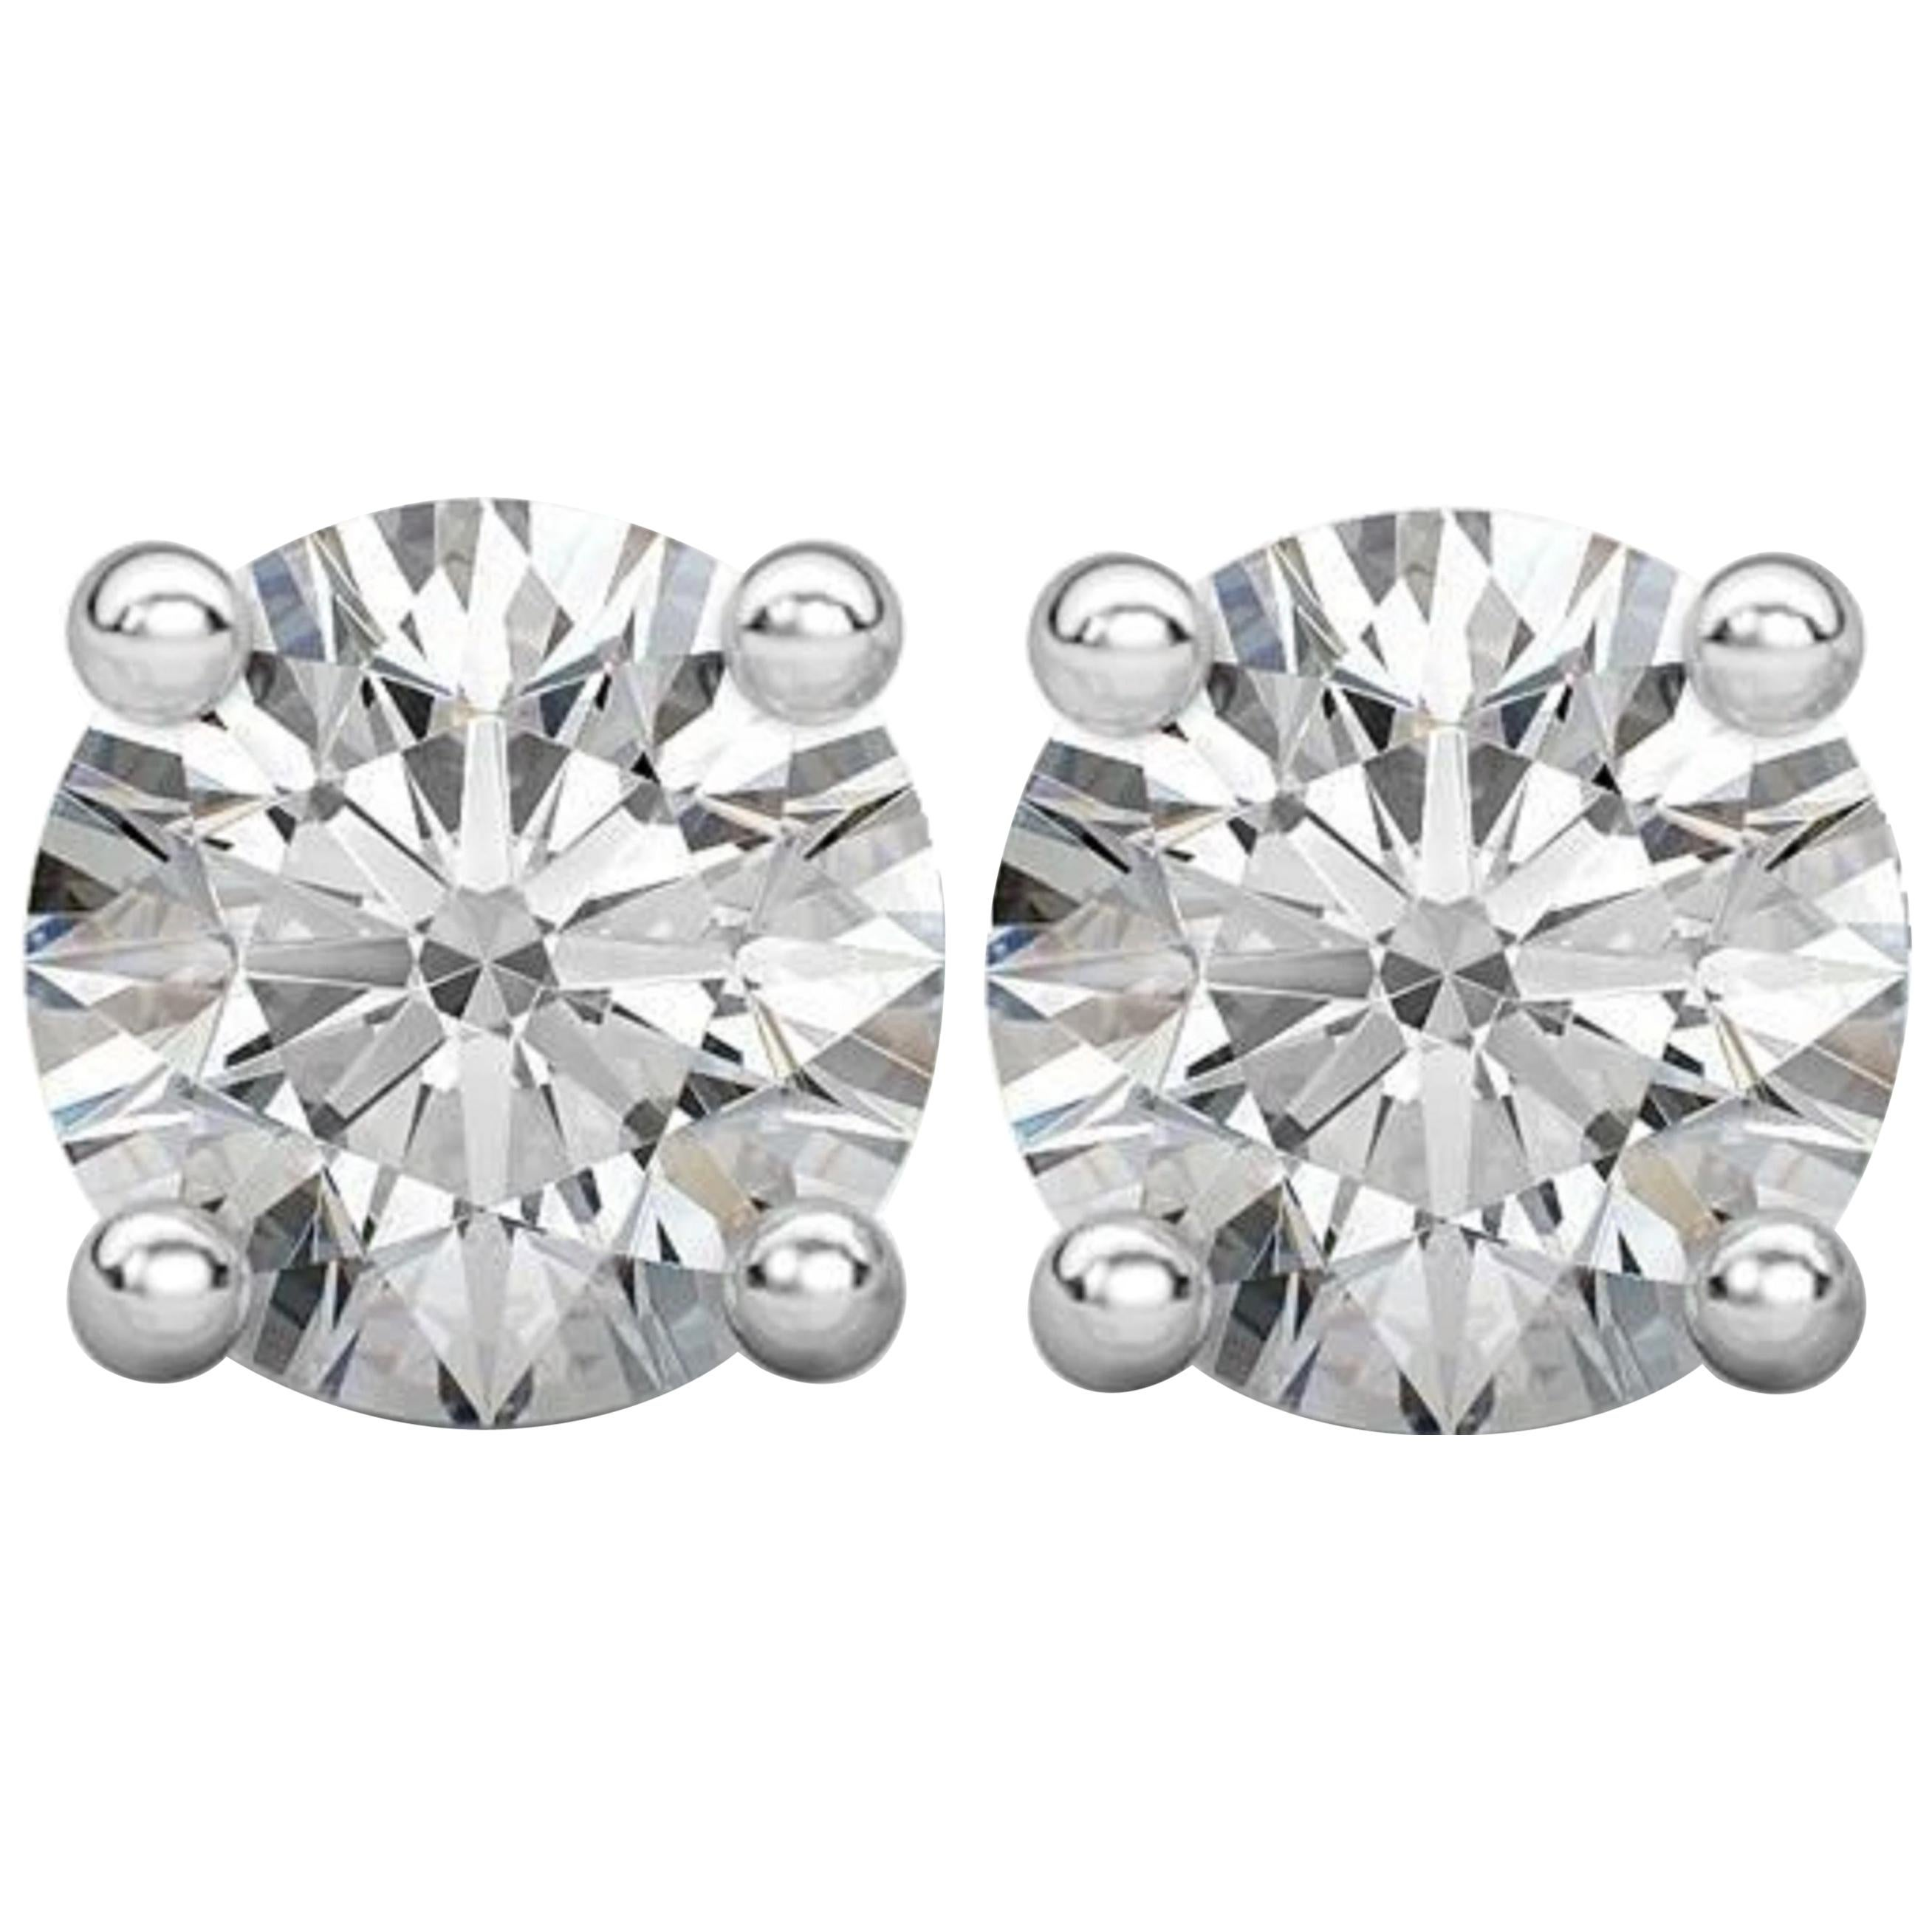 Internally Flawless D Color GIA Certified 1.80 Carat Diamond Studs